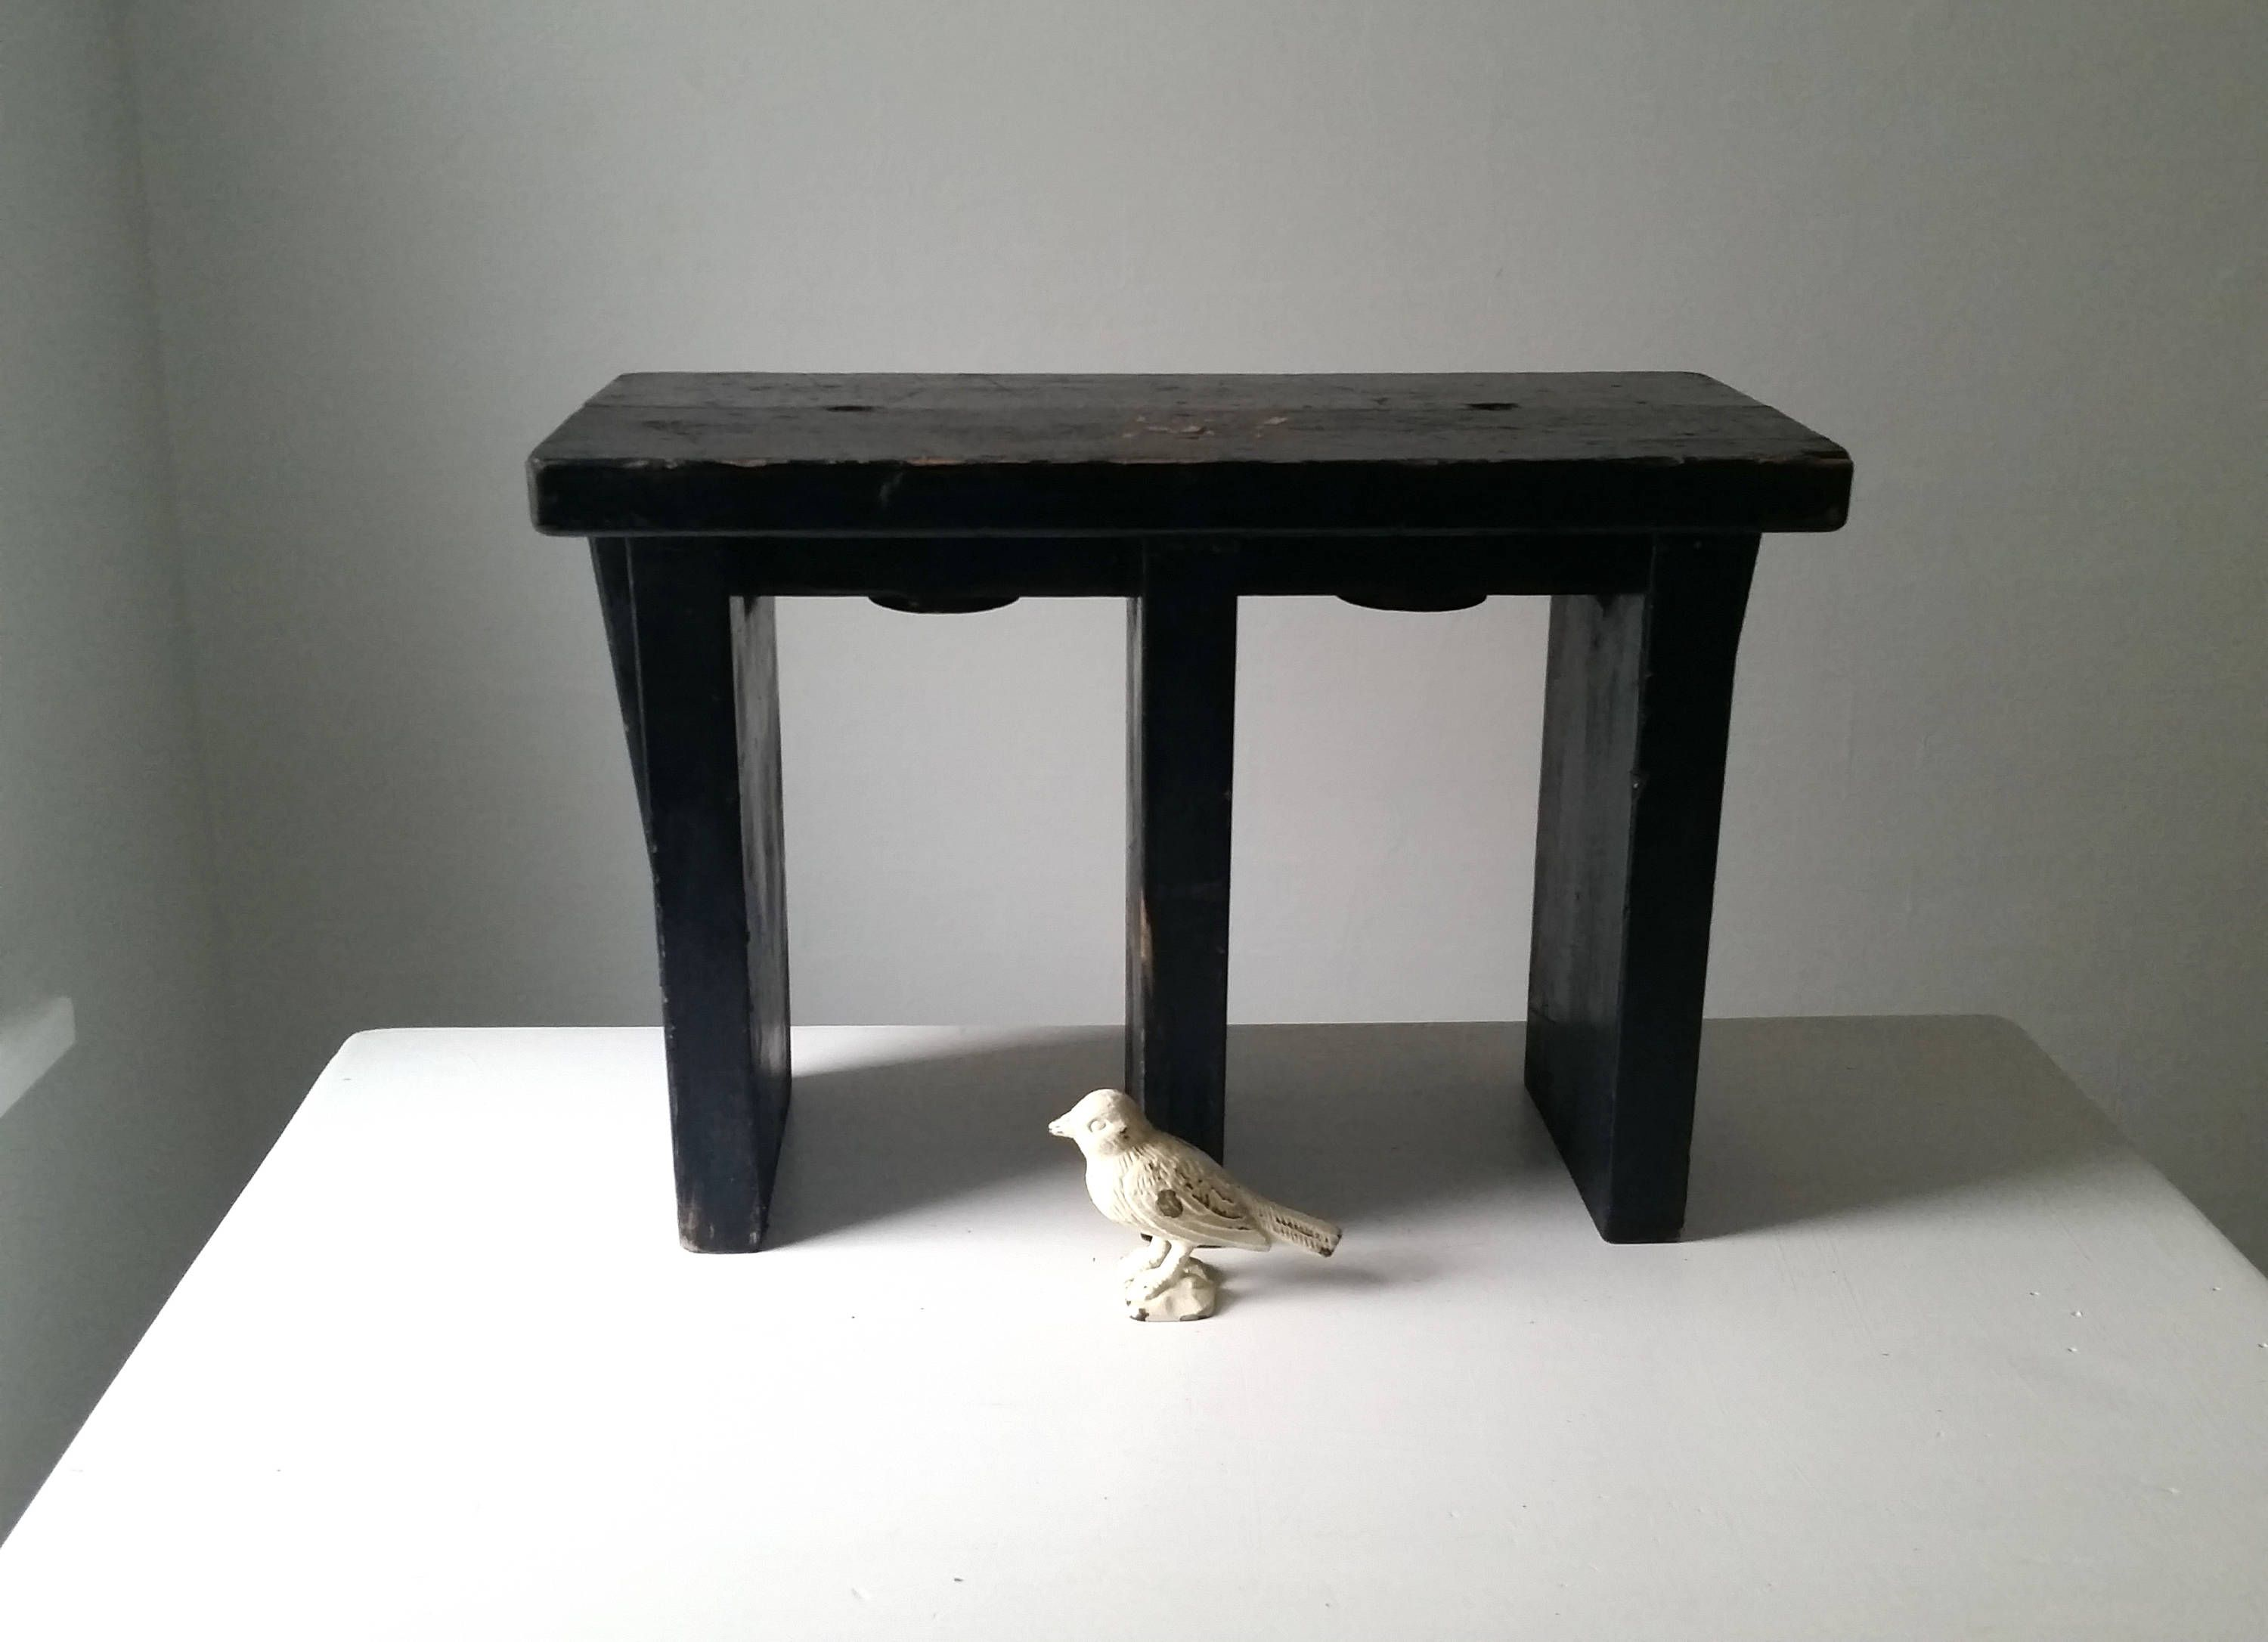 wood countertop unfinished bench legs peerless black inch most table desk hairpin genius